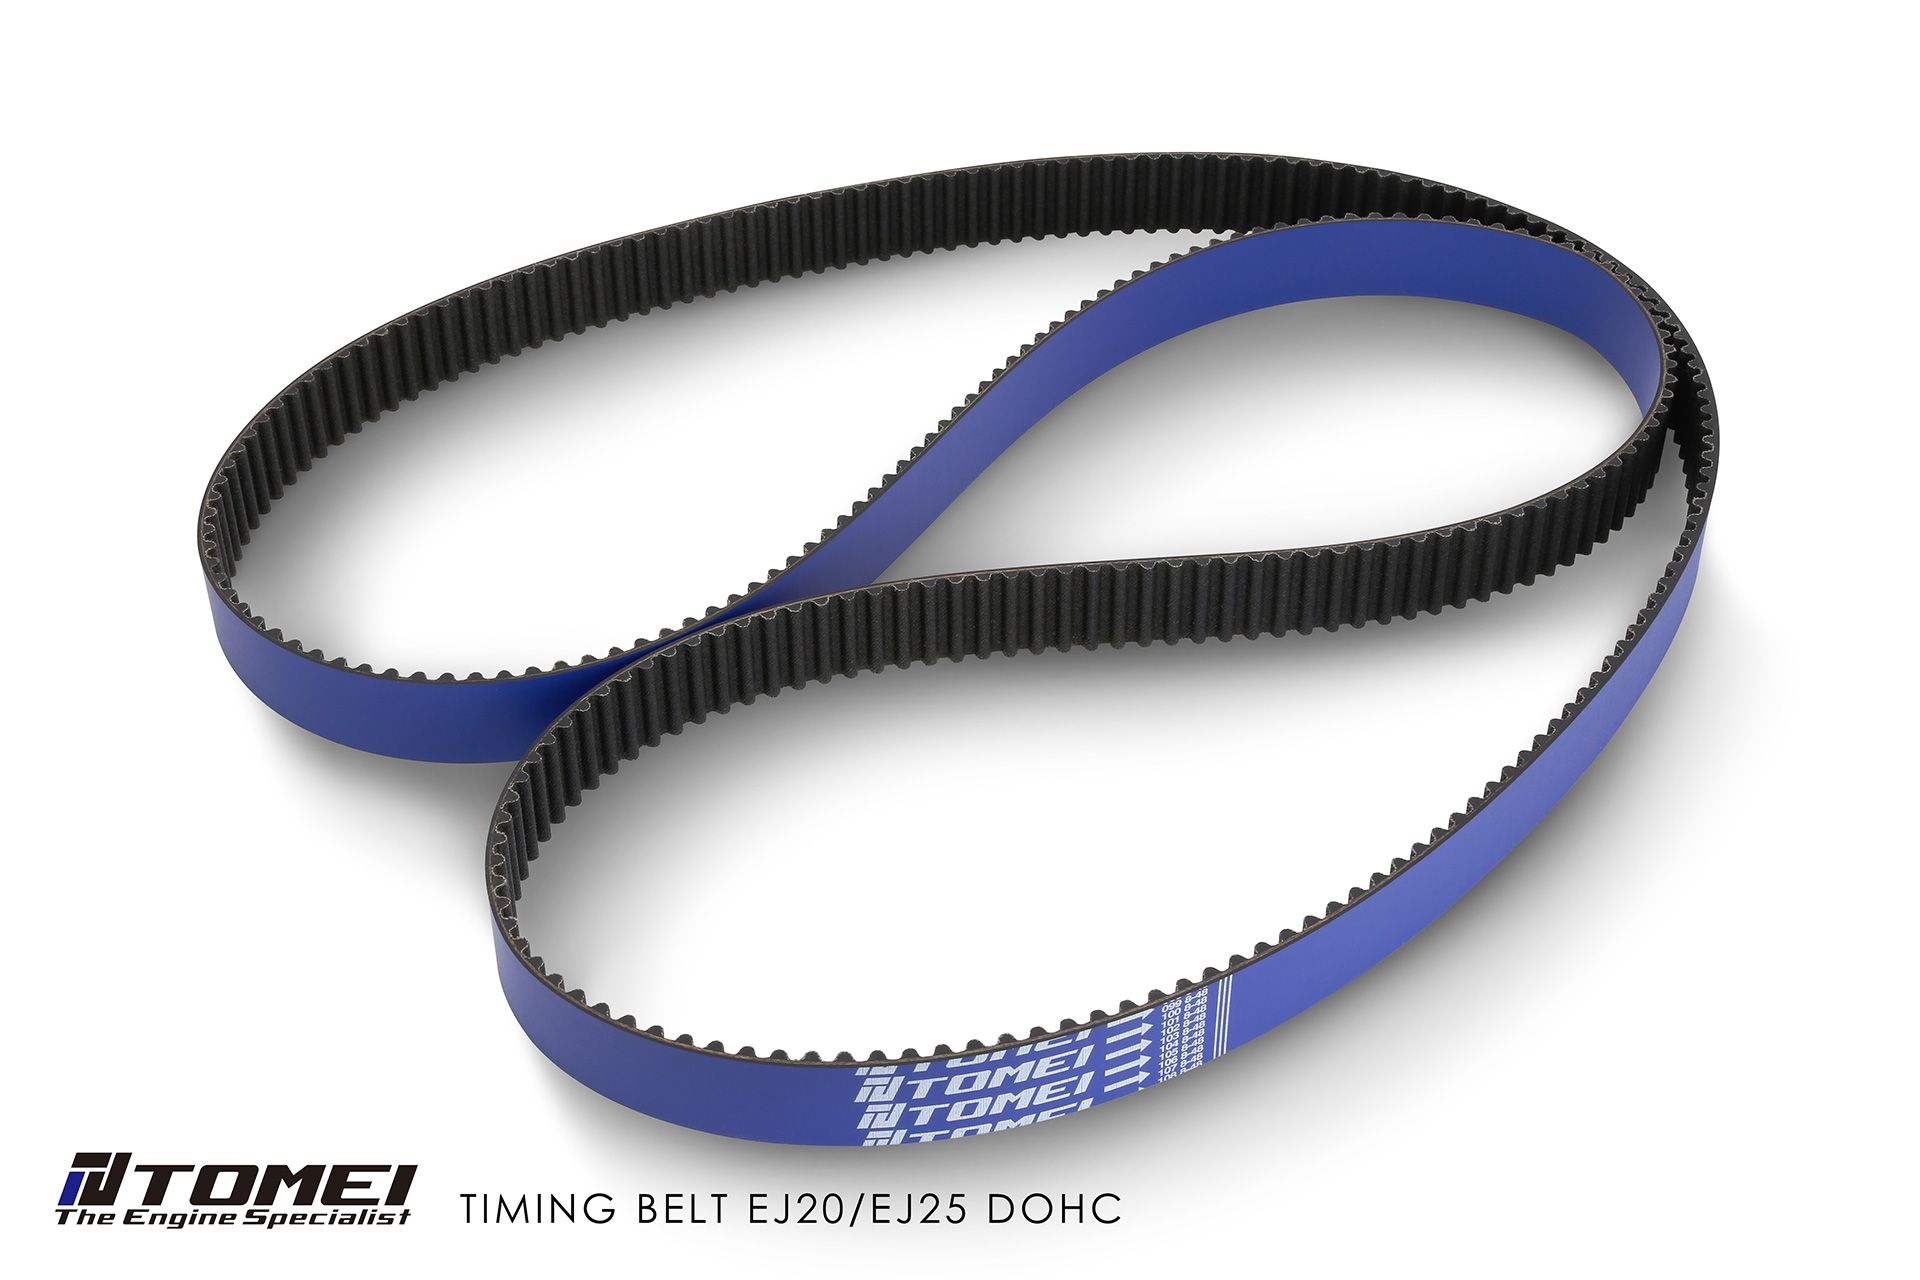 Wrx Timing Belt